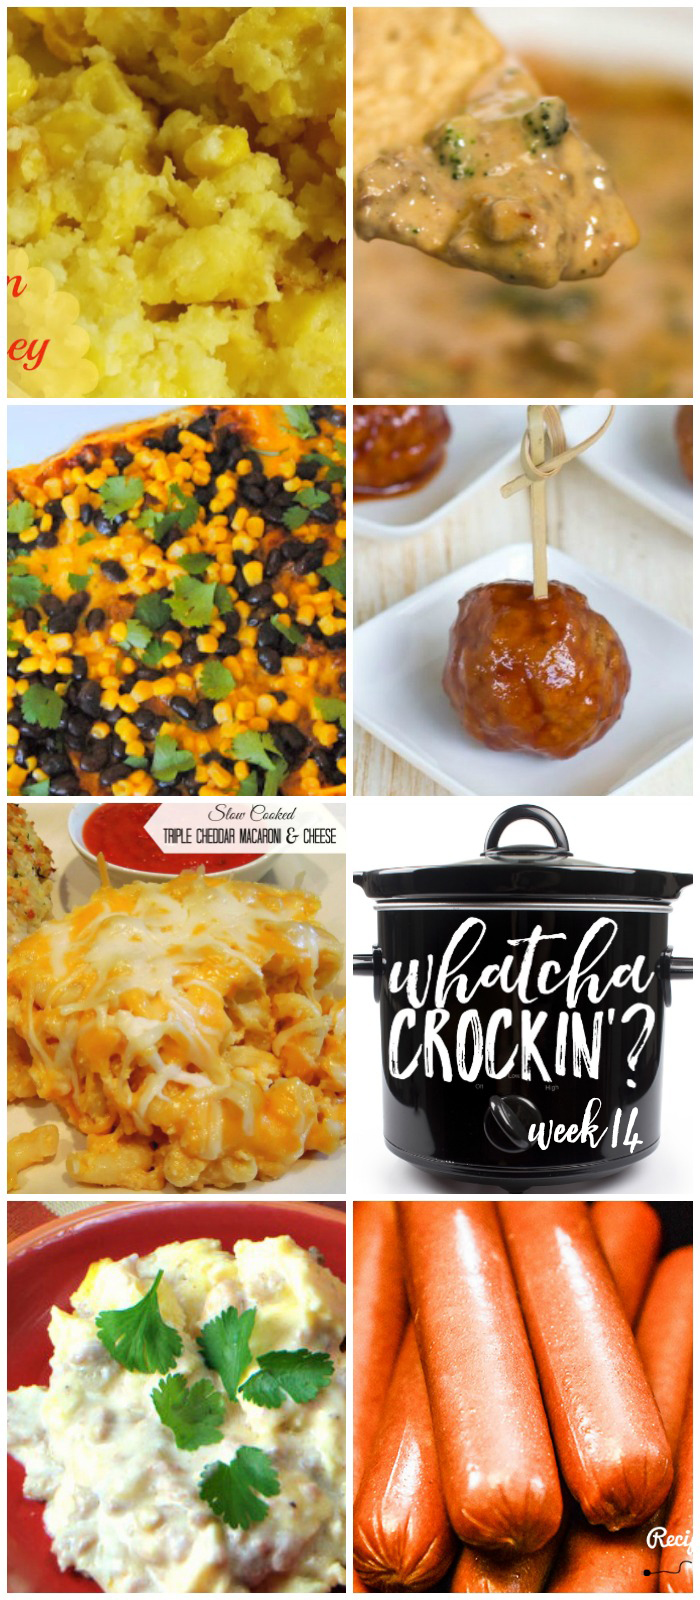 This week's Whatcha Crockin' crock pot recipes include Creamy Cheese Corn Bake, Slow Cooker Triple Cheddar Mac n Cheese, Cooking Hot Dogs in Bulk, Crock Pot Cherry Jalapeno Meatballs, Crock Pot Scrambled Eggs Casserole, Beefy Broccoli Dip, Crock Pot Tex Mex Casserole and much more!